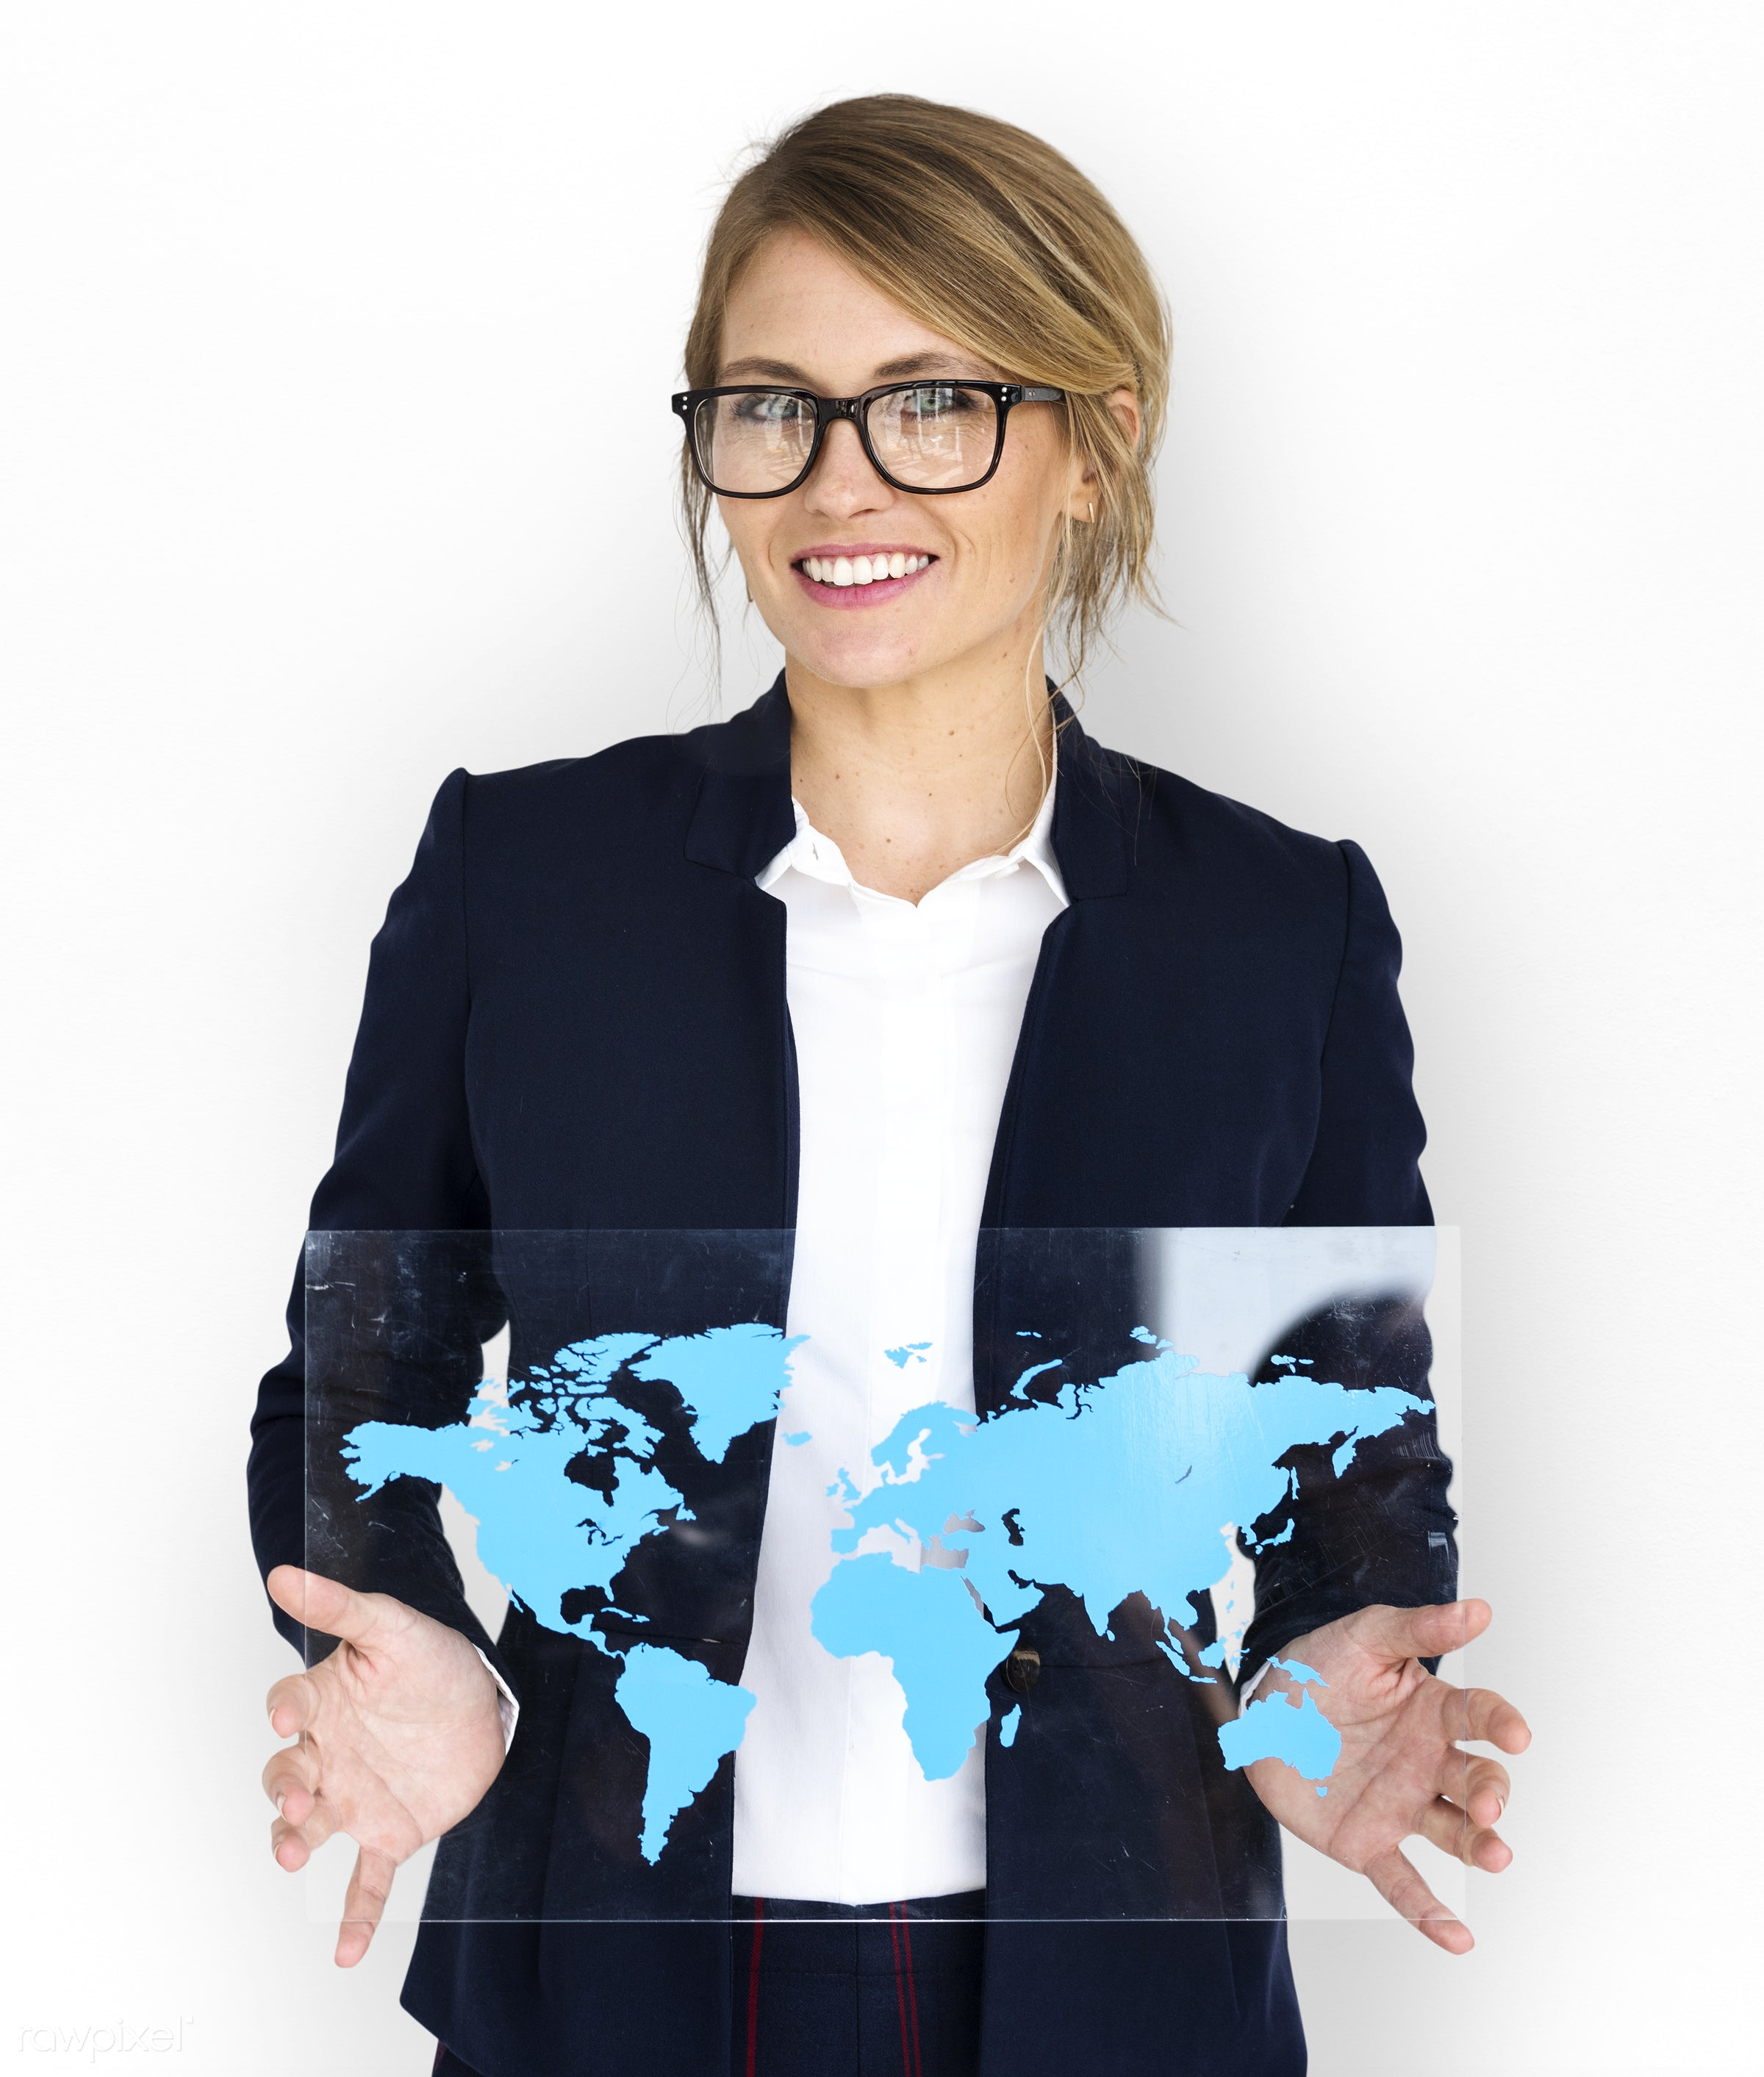 studio, expression, person, holding, people, placard, woman, smile, cheerful, smiling, isolated, connection, global, white,...